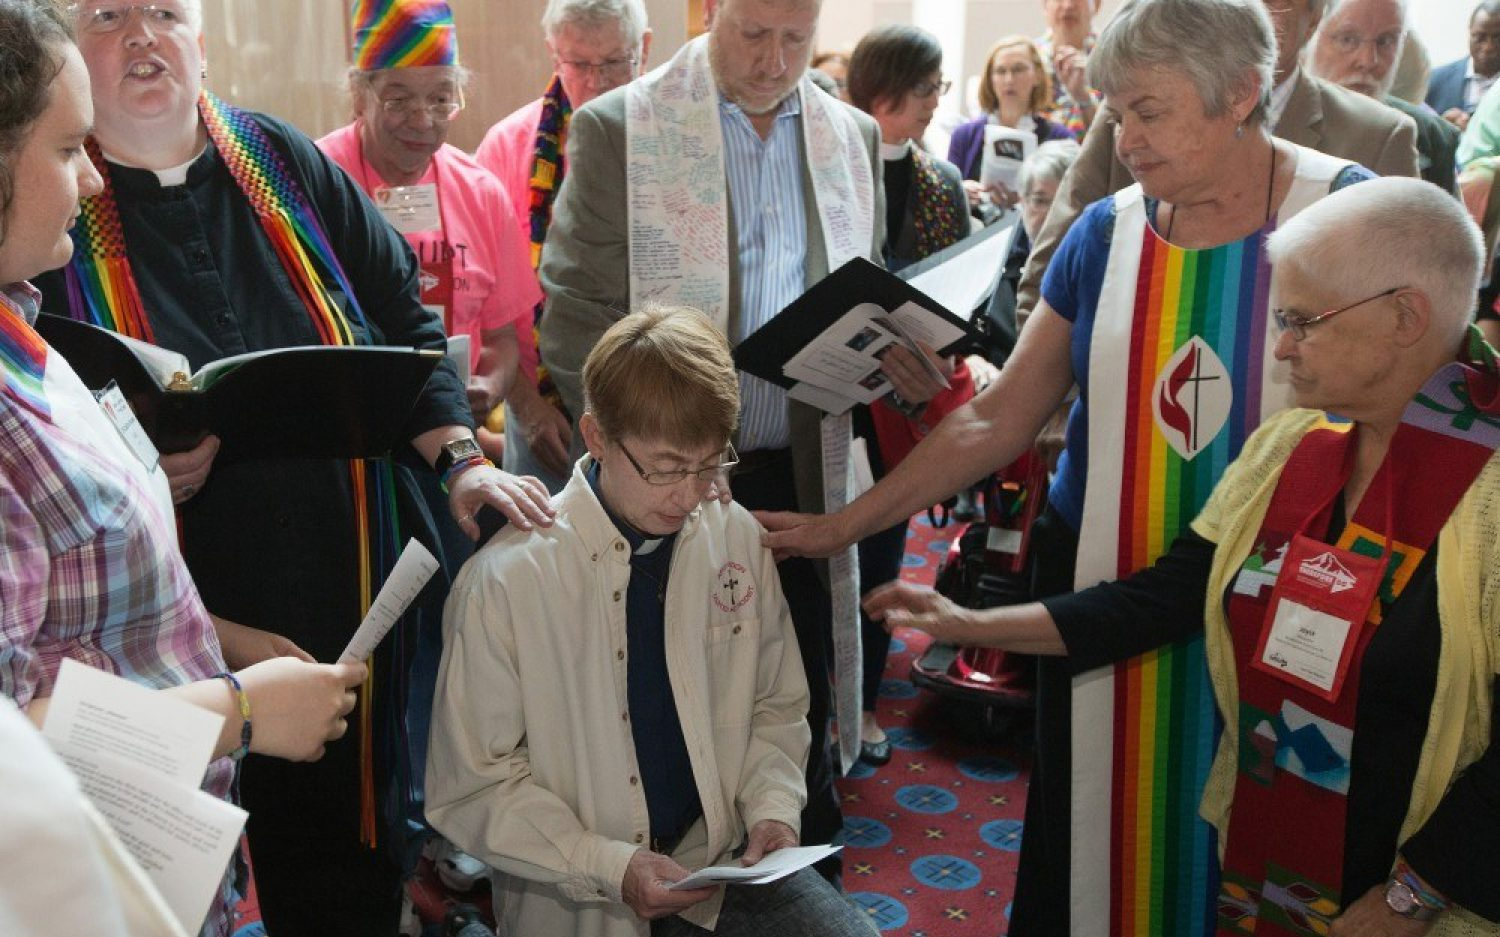 Methodists postpone decisions on sexuality, marriage